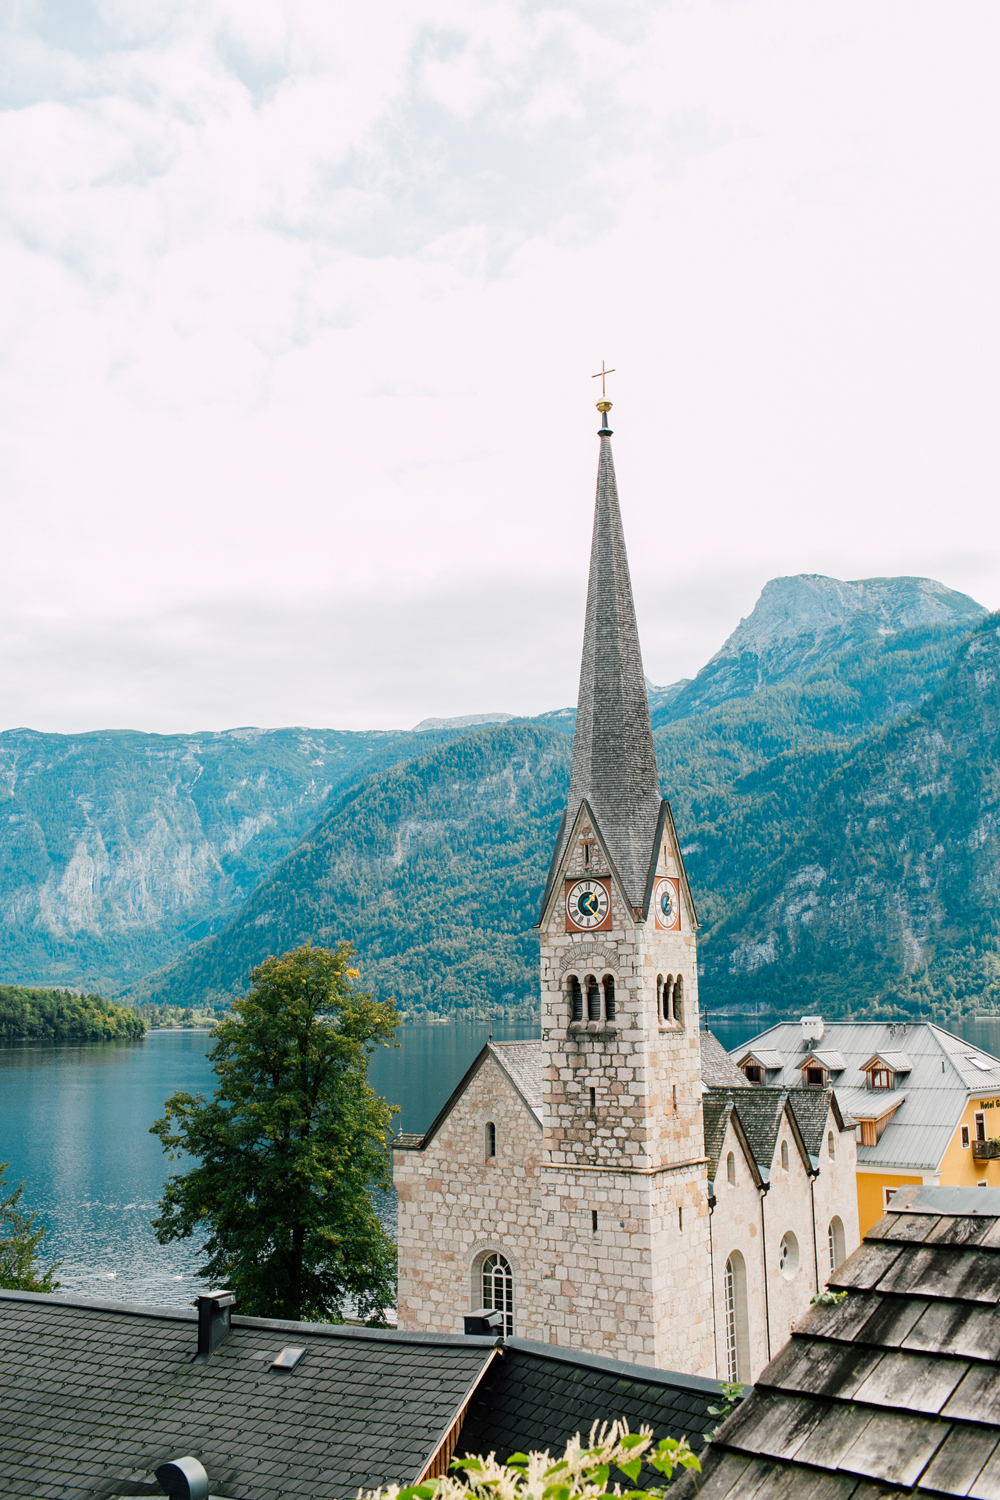 020-europe-photographer-katheryn-moran-hallstatt-austria-national-geographics.jpg